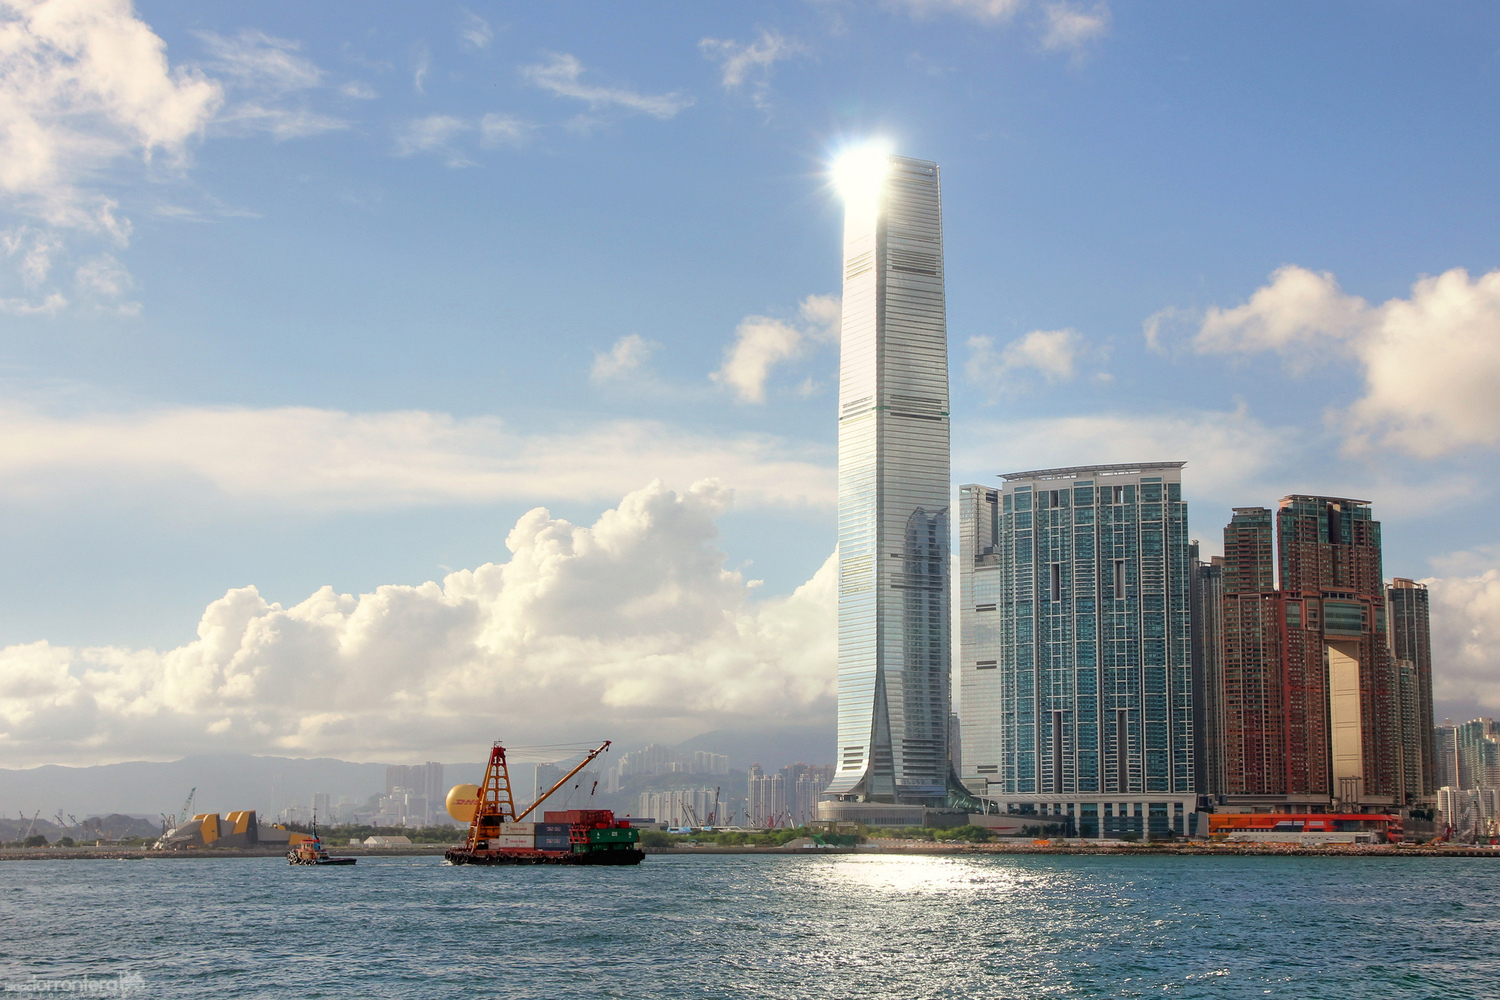 These Are the World's 25 Tallest Buildings,International Commerce Centre. Image © Isaac Torrontera [Flickr] under license CC BY 2.0